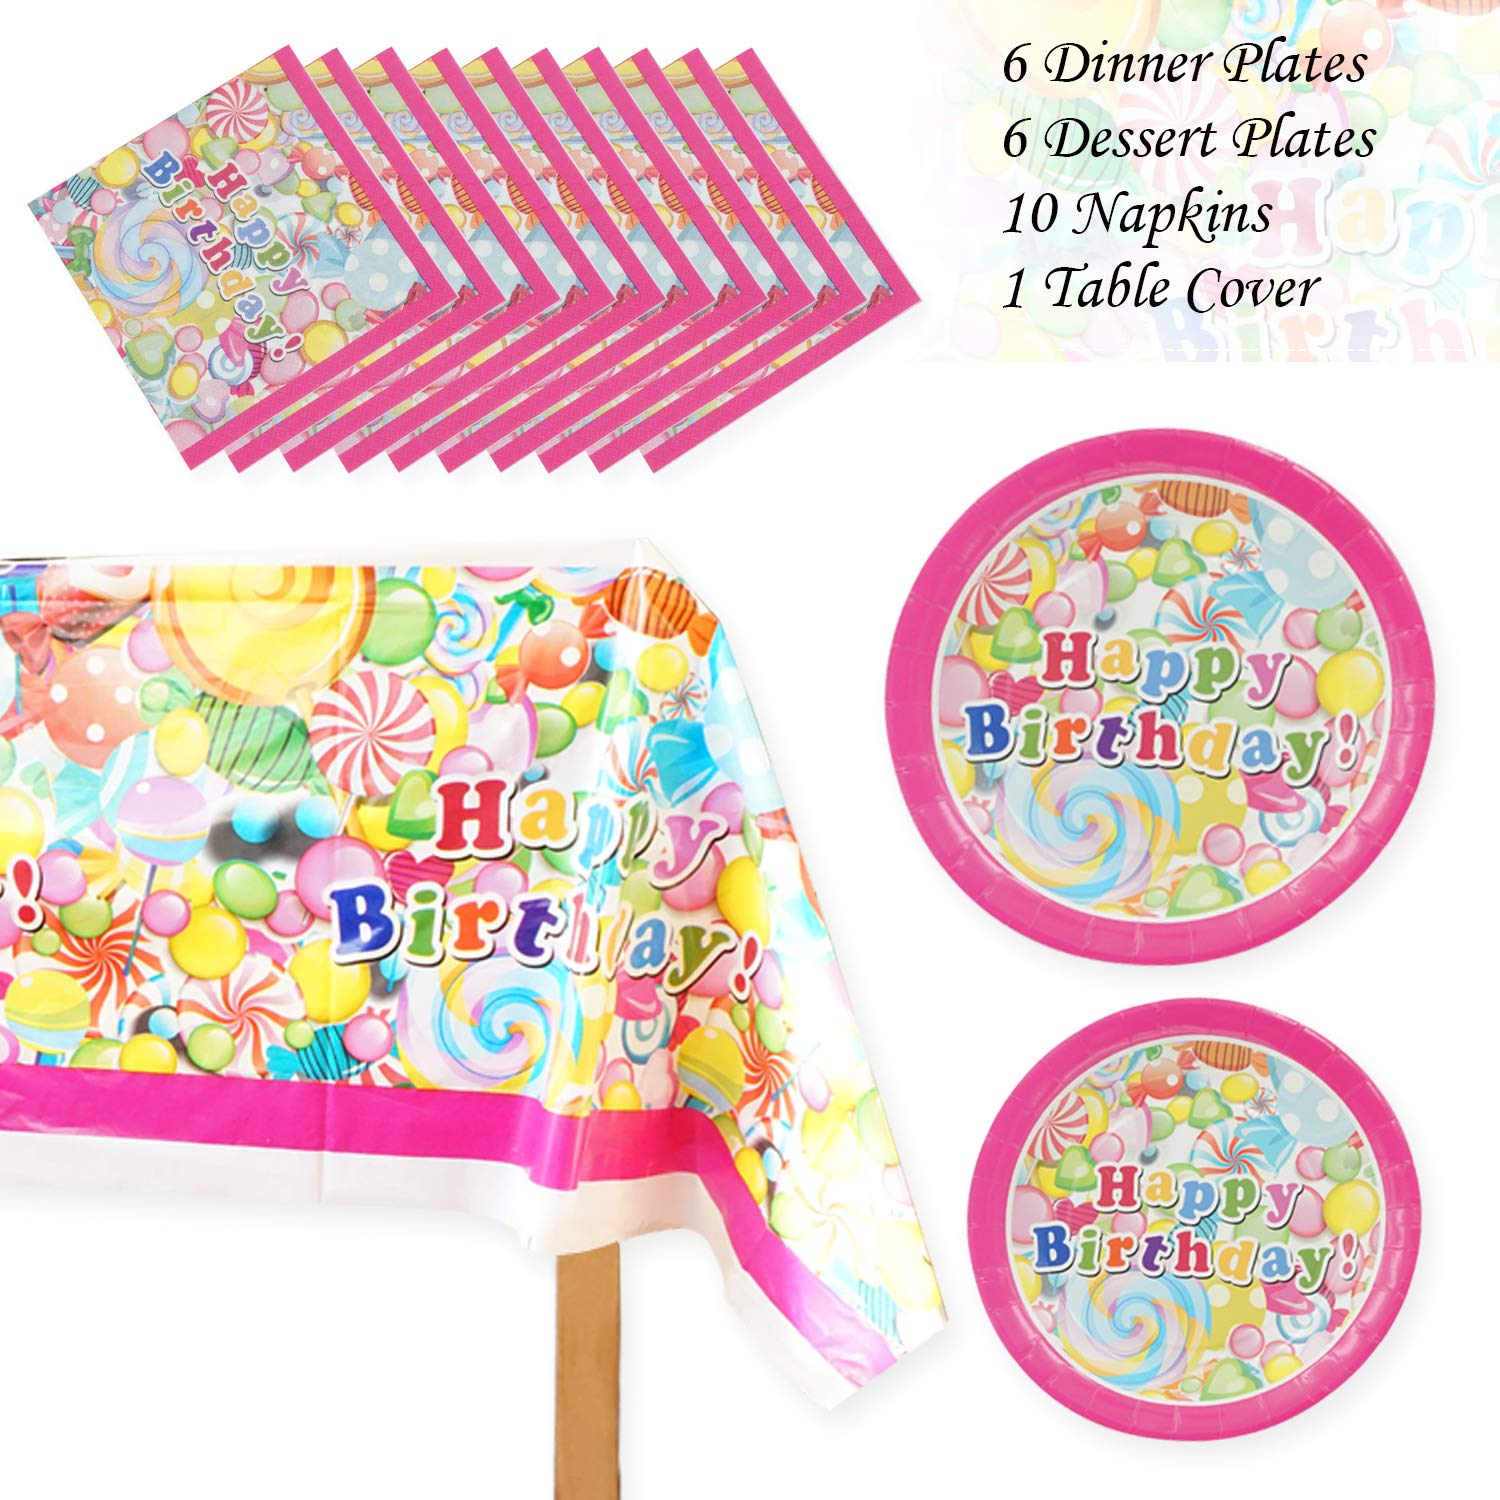 Themed Party Gift for for Cute Fairy Fantasy Girls Tablecloth Happy Birthday Party Decoration Cups Plates Hats Invitation Cards Eichzhushp All-in-One Party Supplies Set Pack Include Banner